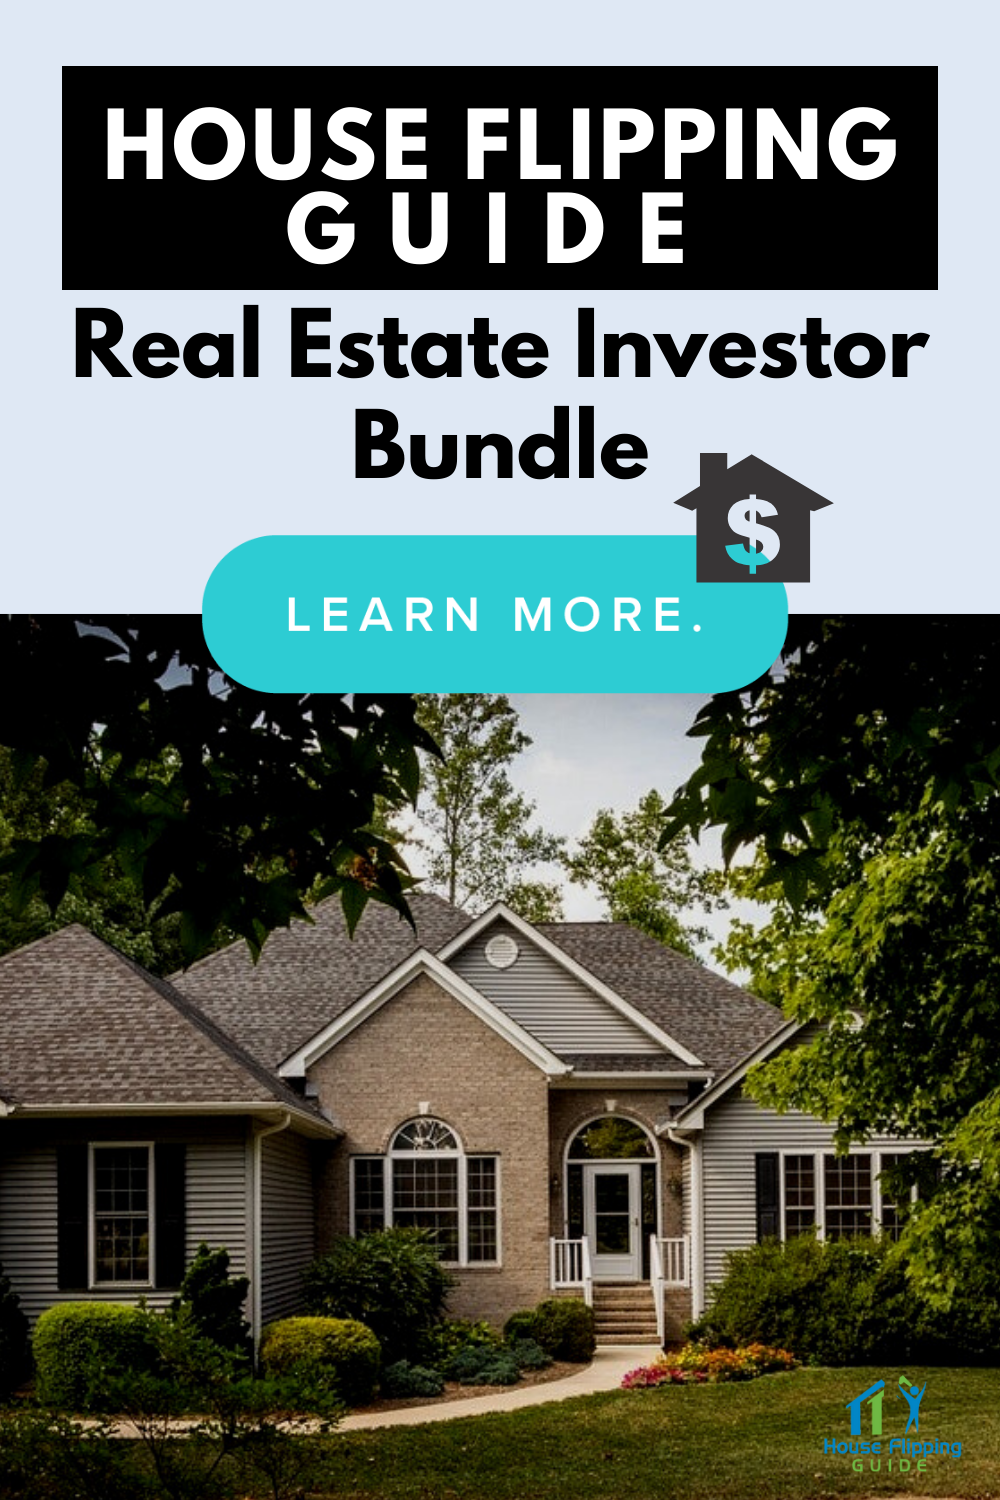 House Flipping Guide: Real Estate Investor Bundle